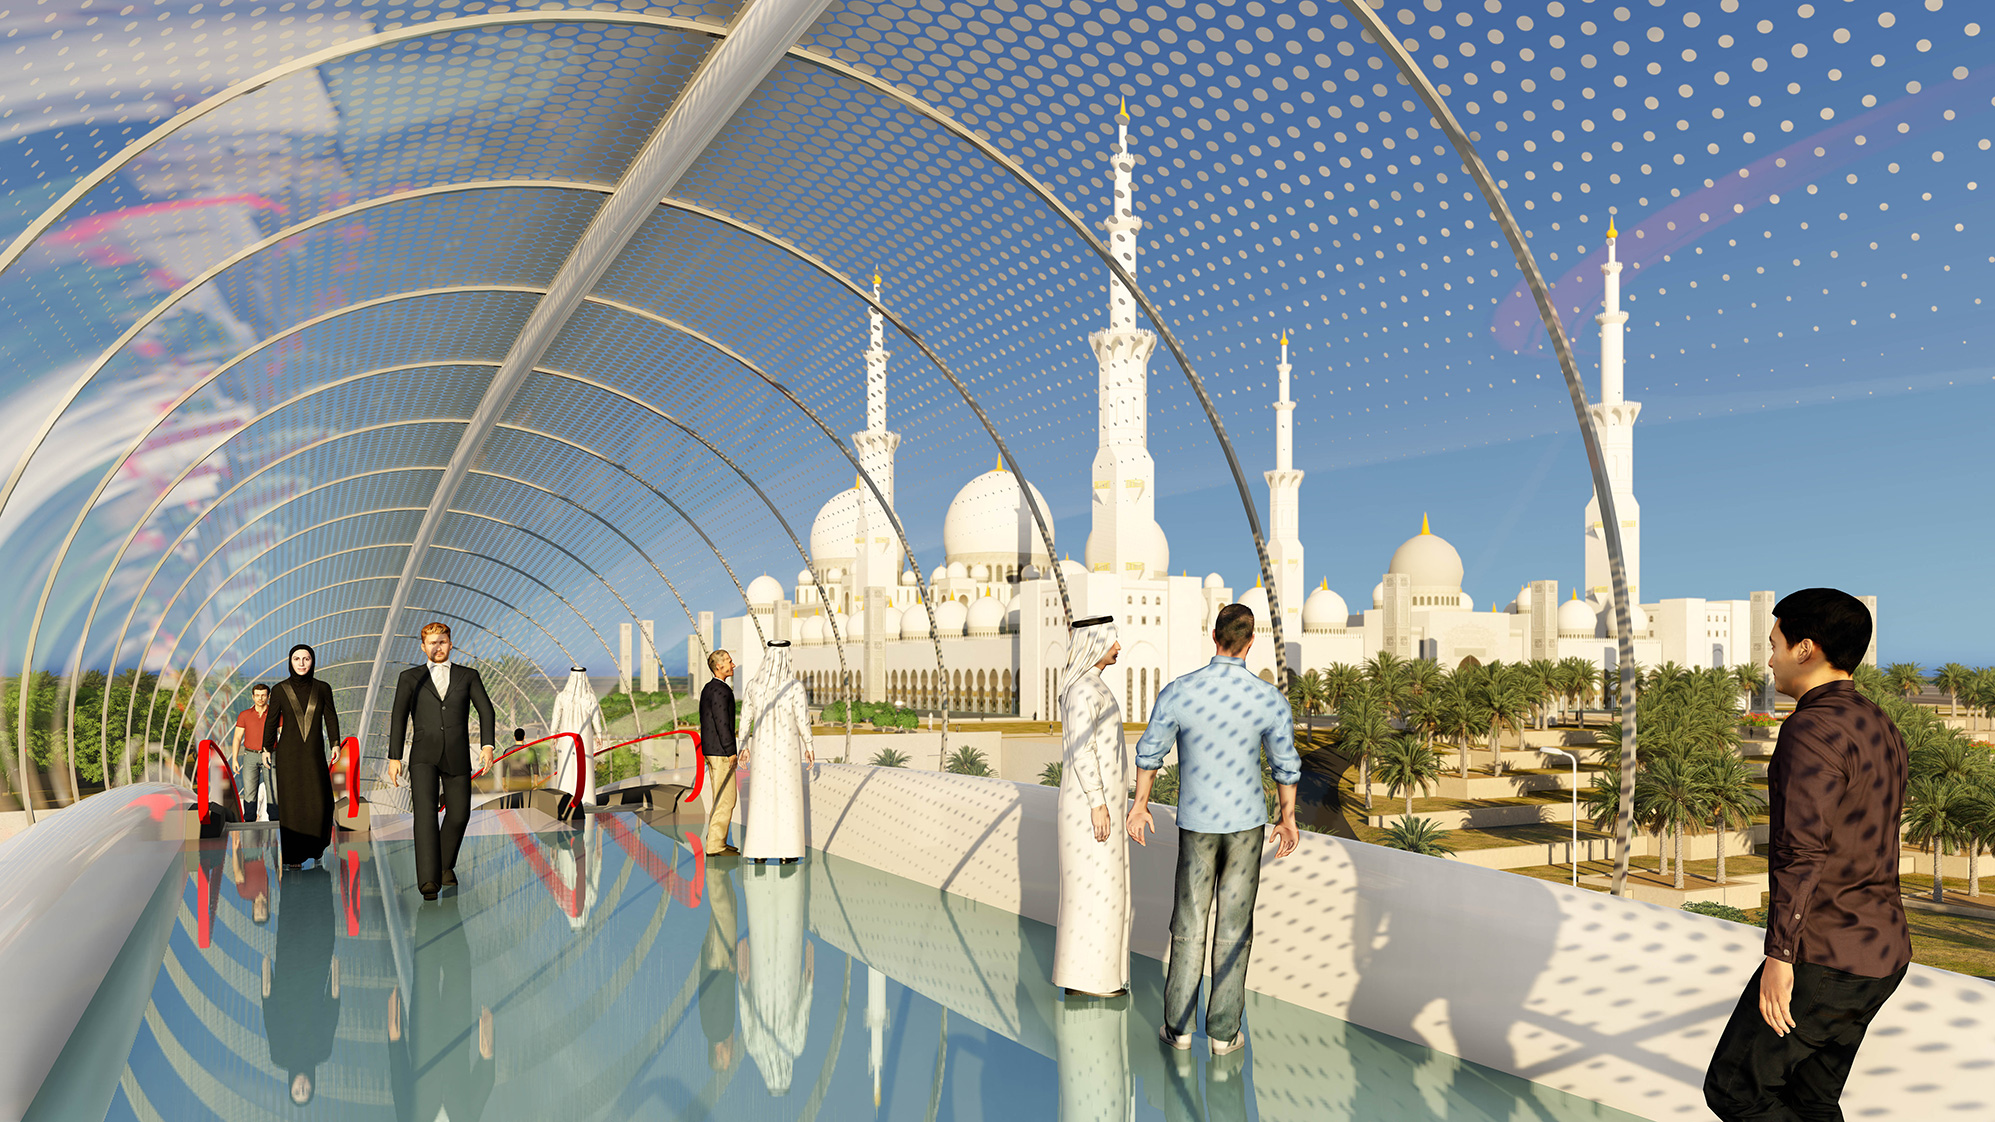 Footbridge Sheikh Zayed Grand Mosque